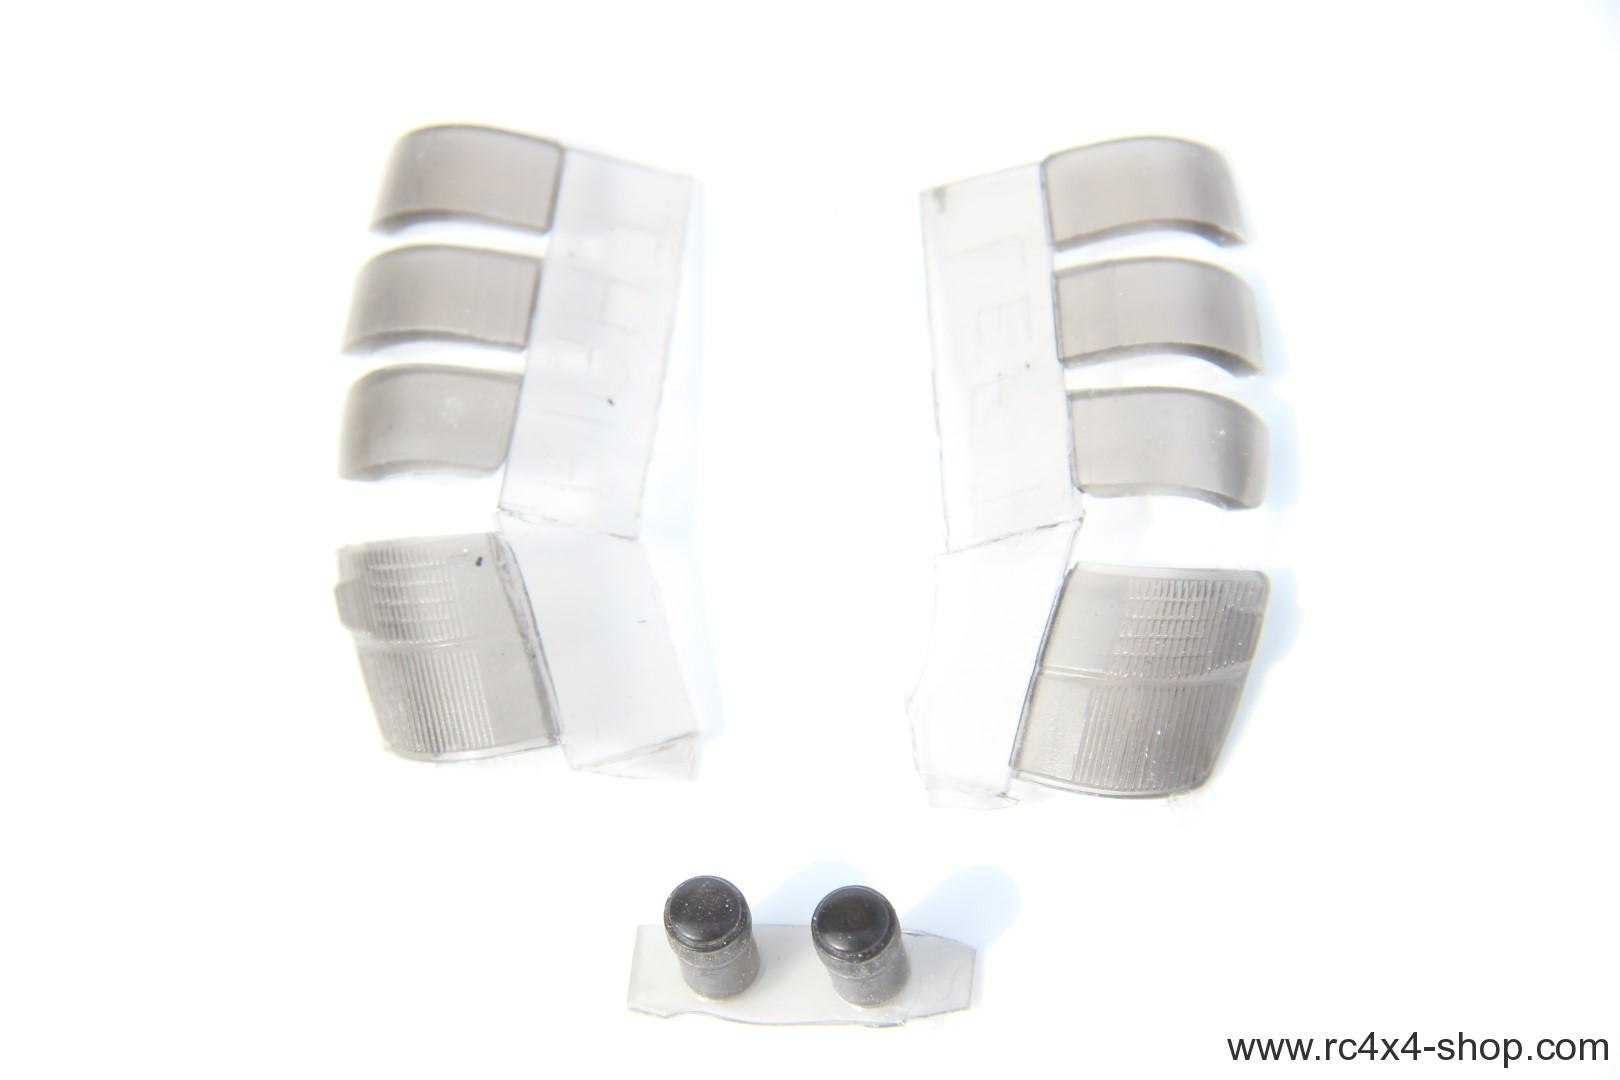 Light Buckets and smoke covers for Mitsubishi Pajero